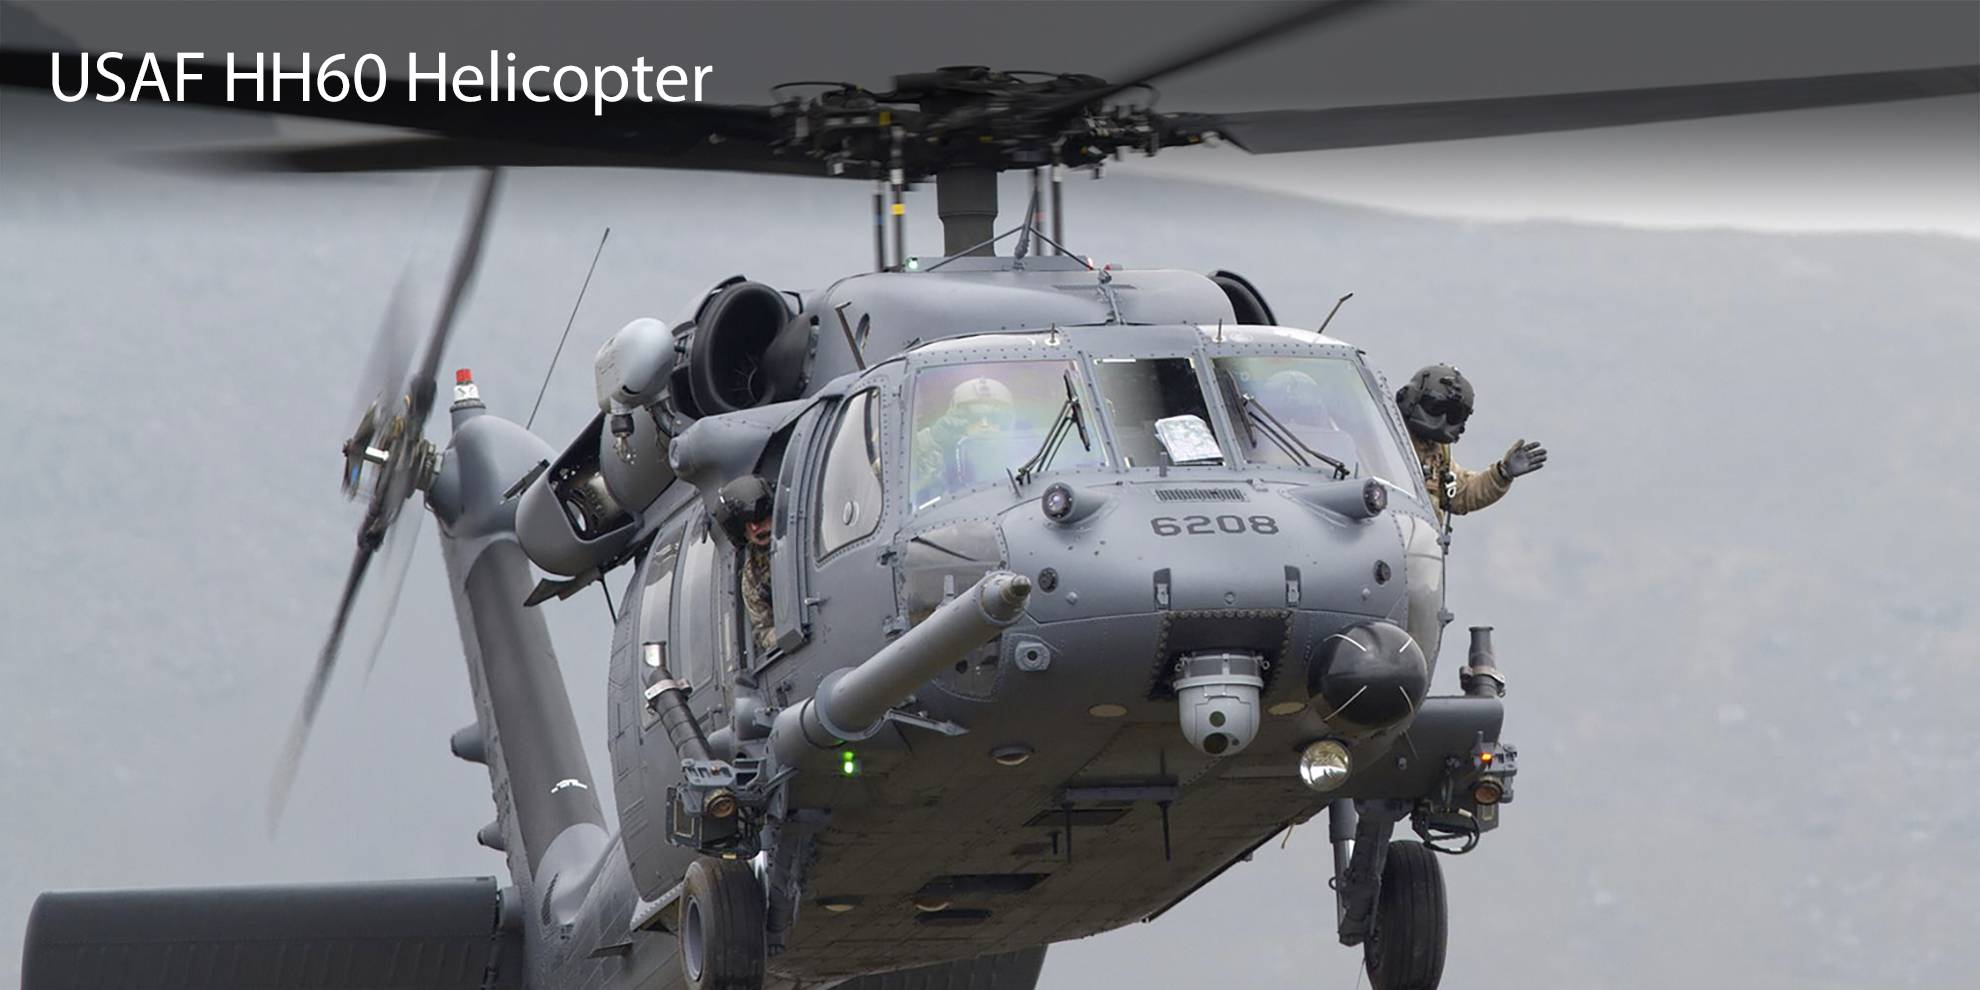 USAF HH60 Helicopters